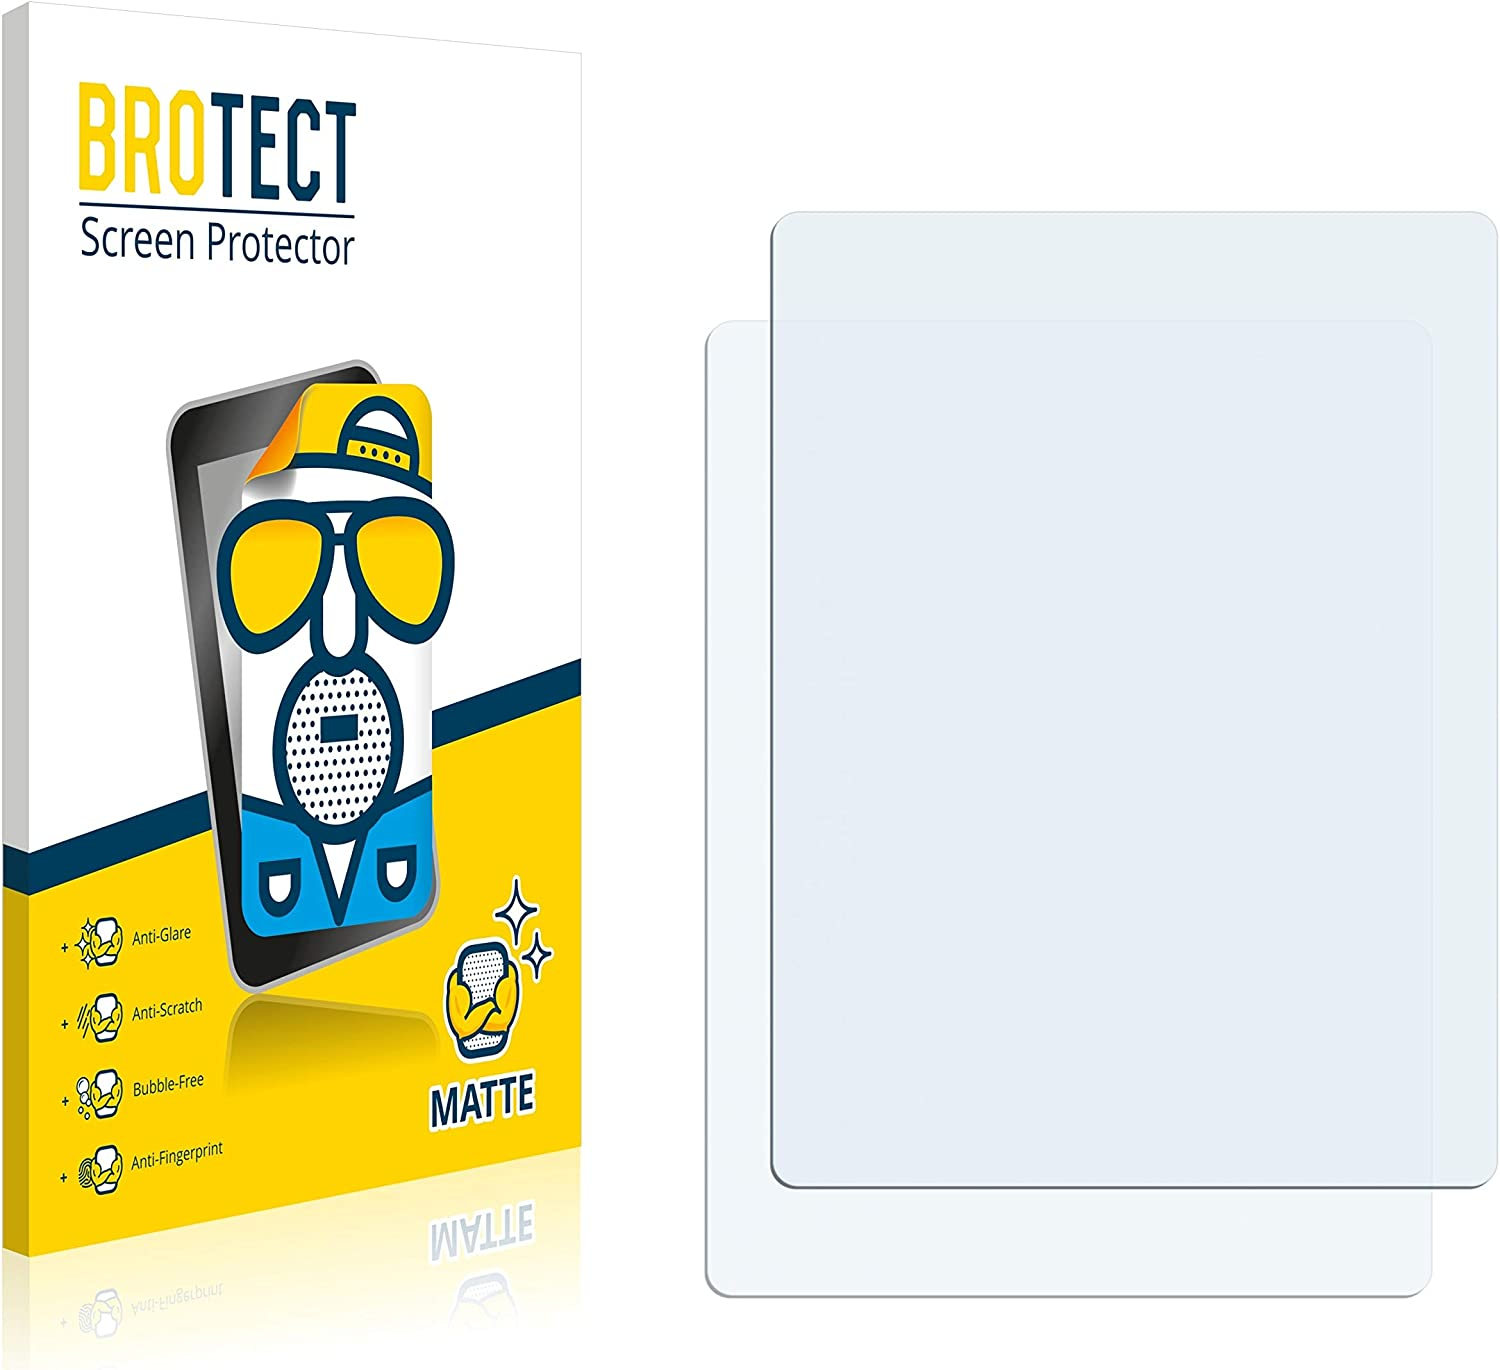 Matte Anti-Scratch 2X BROTECT Matte Screen Protector for VeriFone CCV Anti-Glare